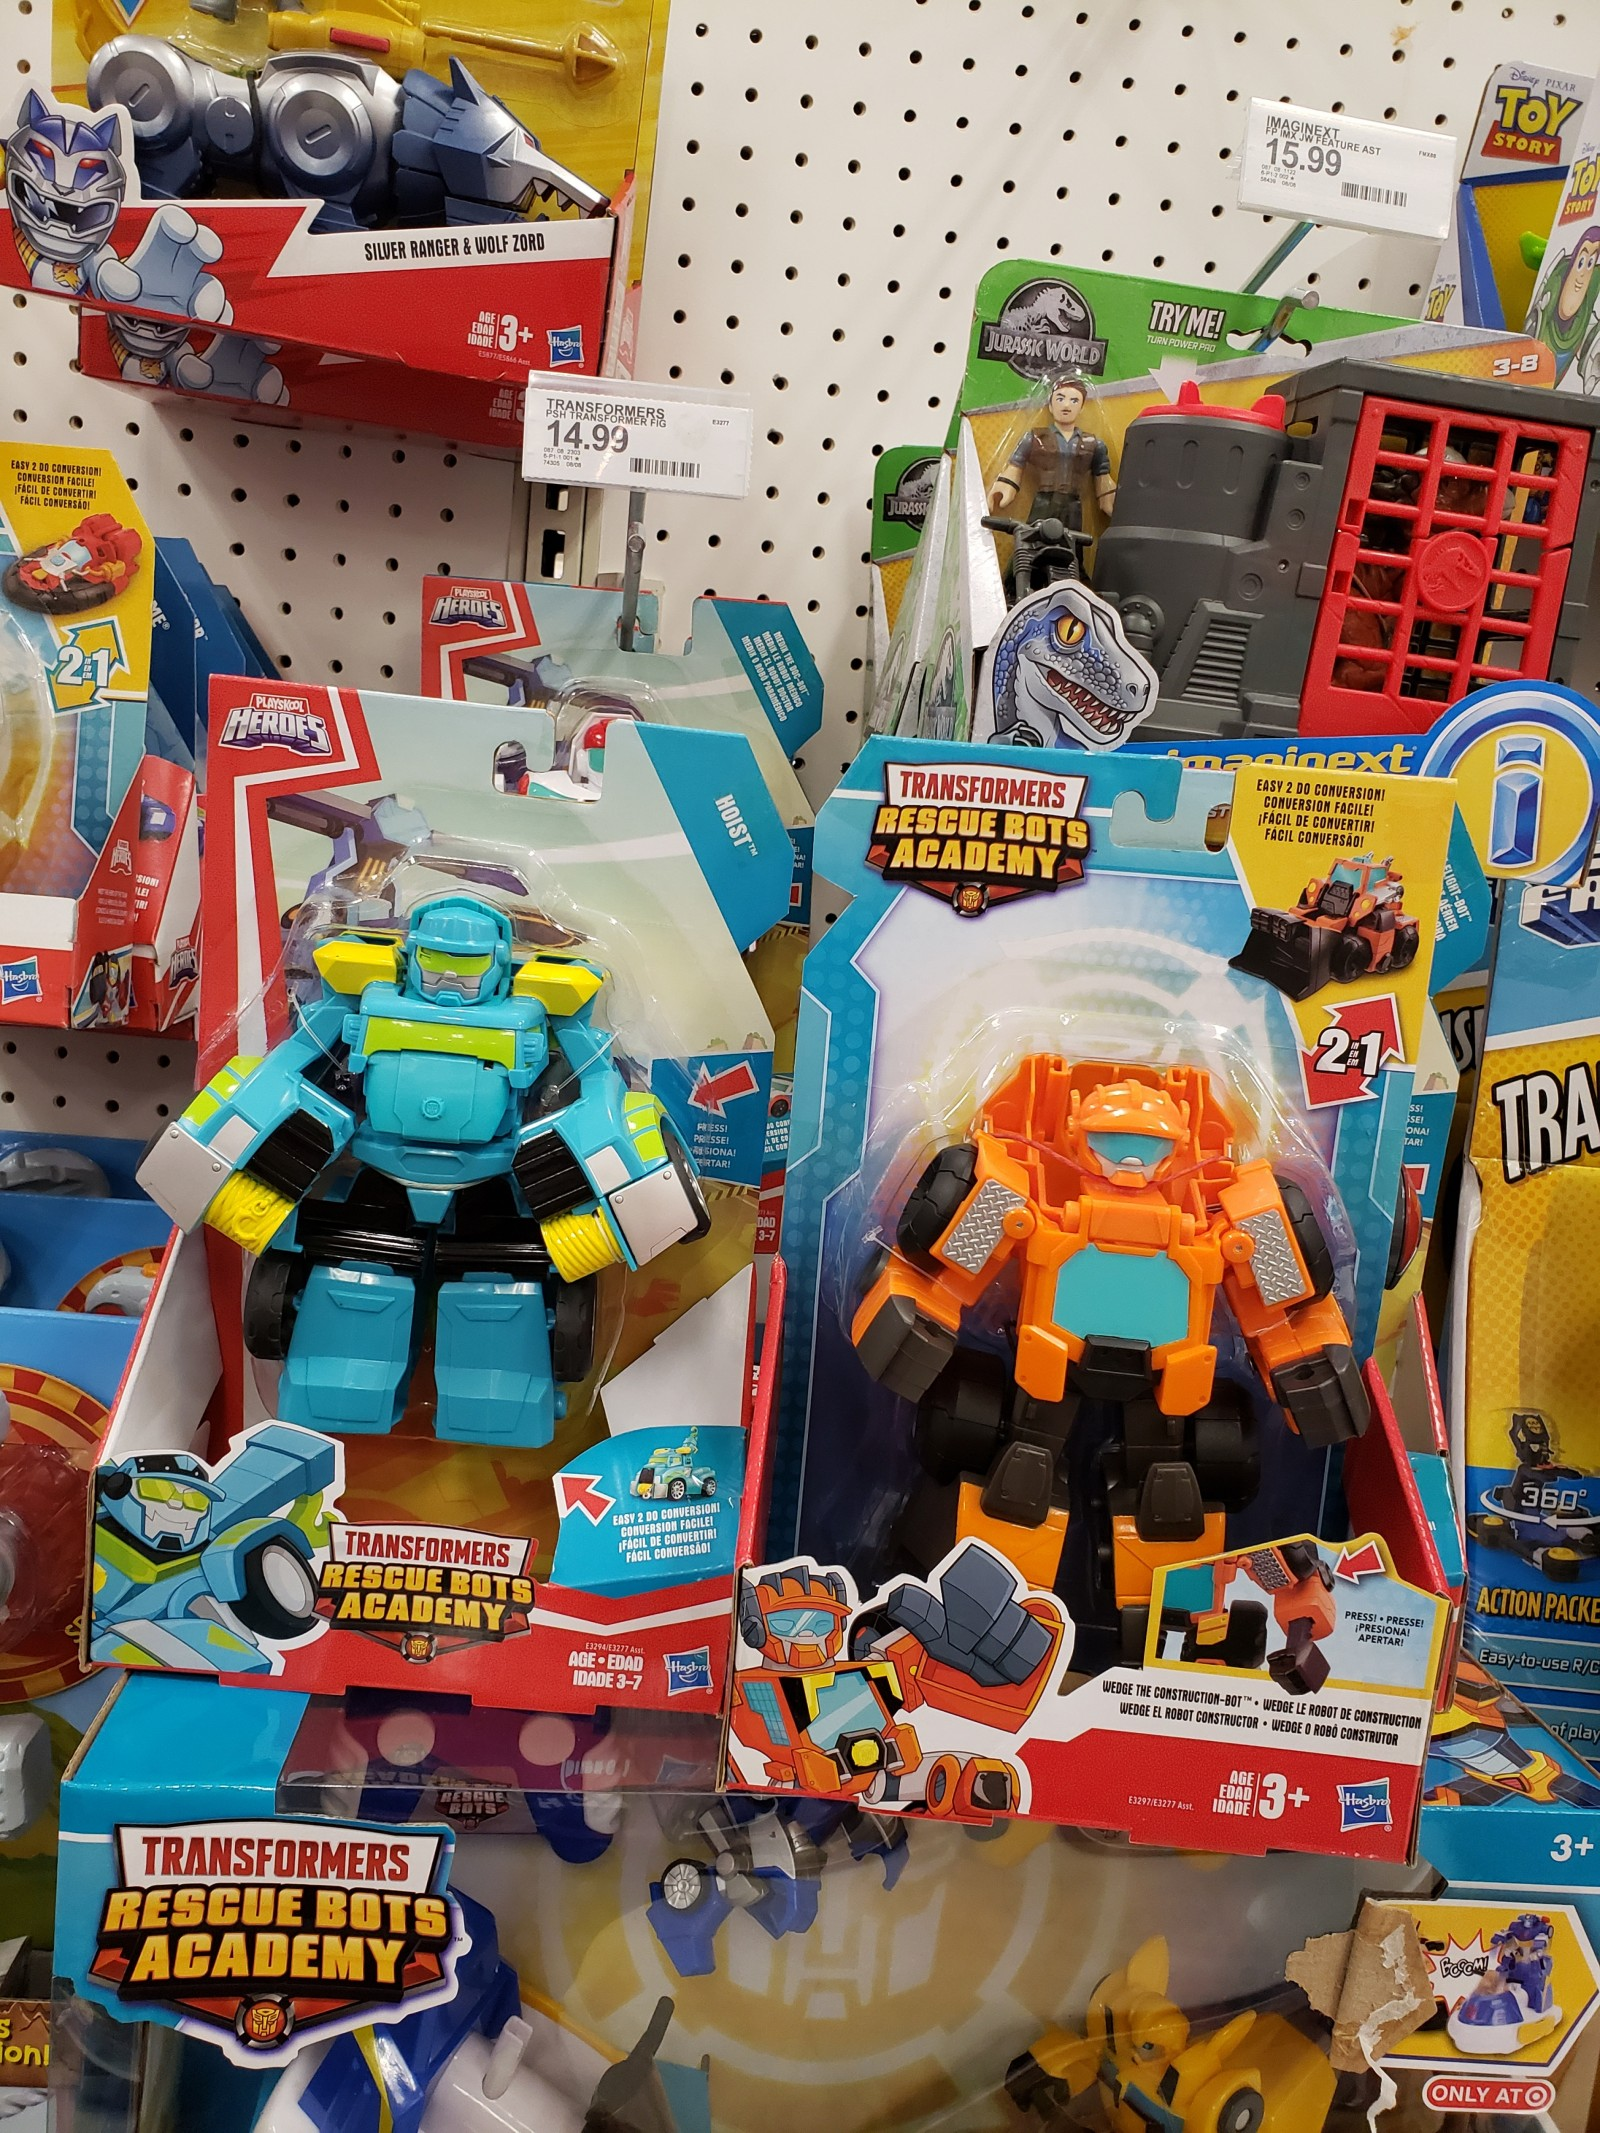 Transformers News: Jumbo Sized Rescue Bots Academy Wedge and Hoist Spotted at US Retail